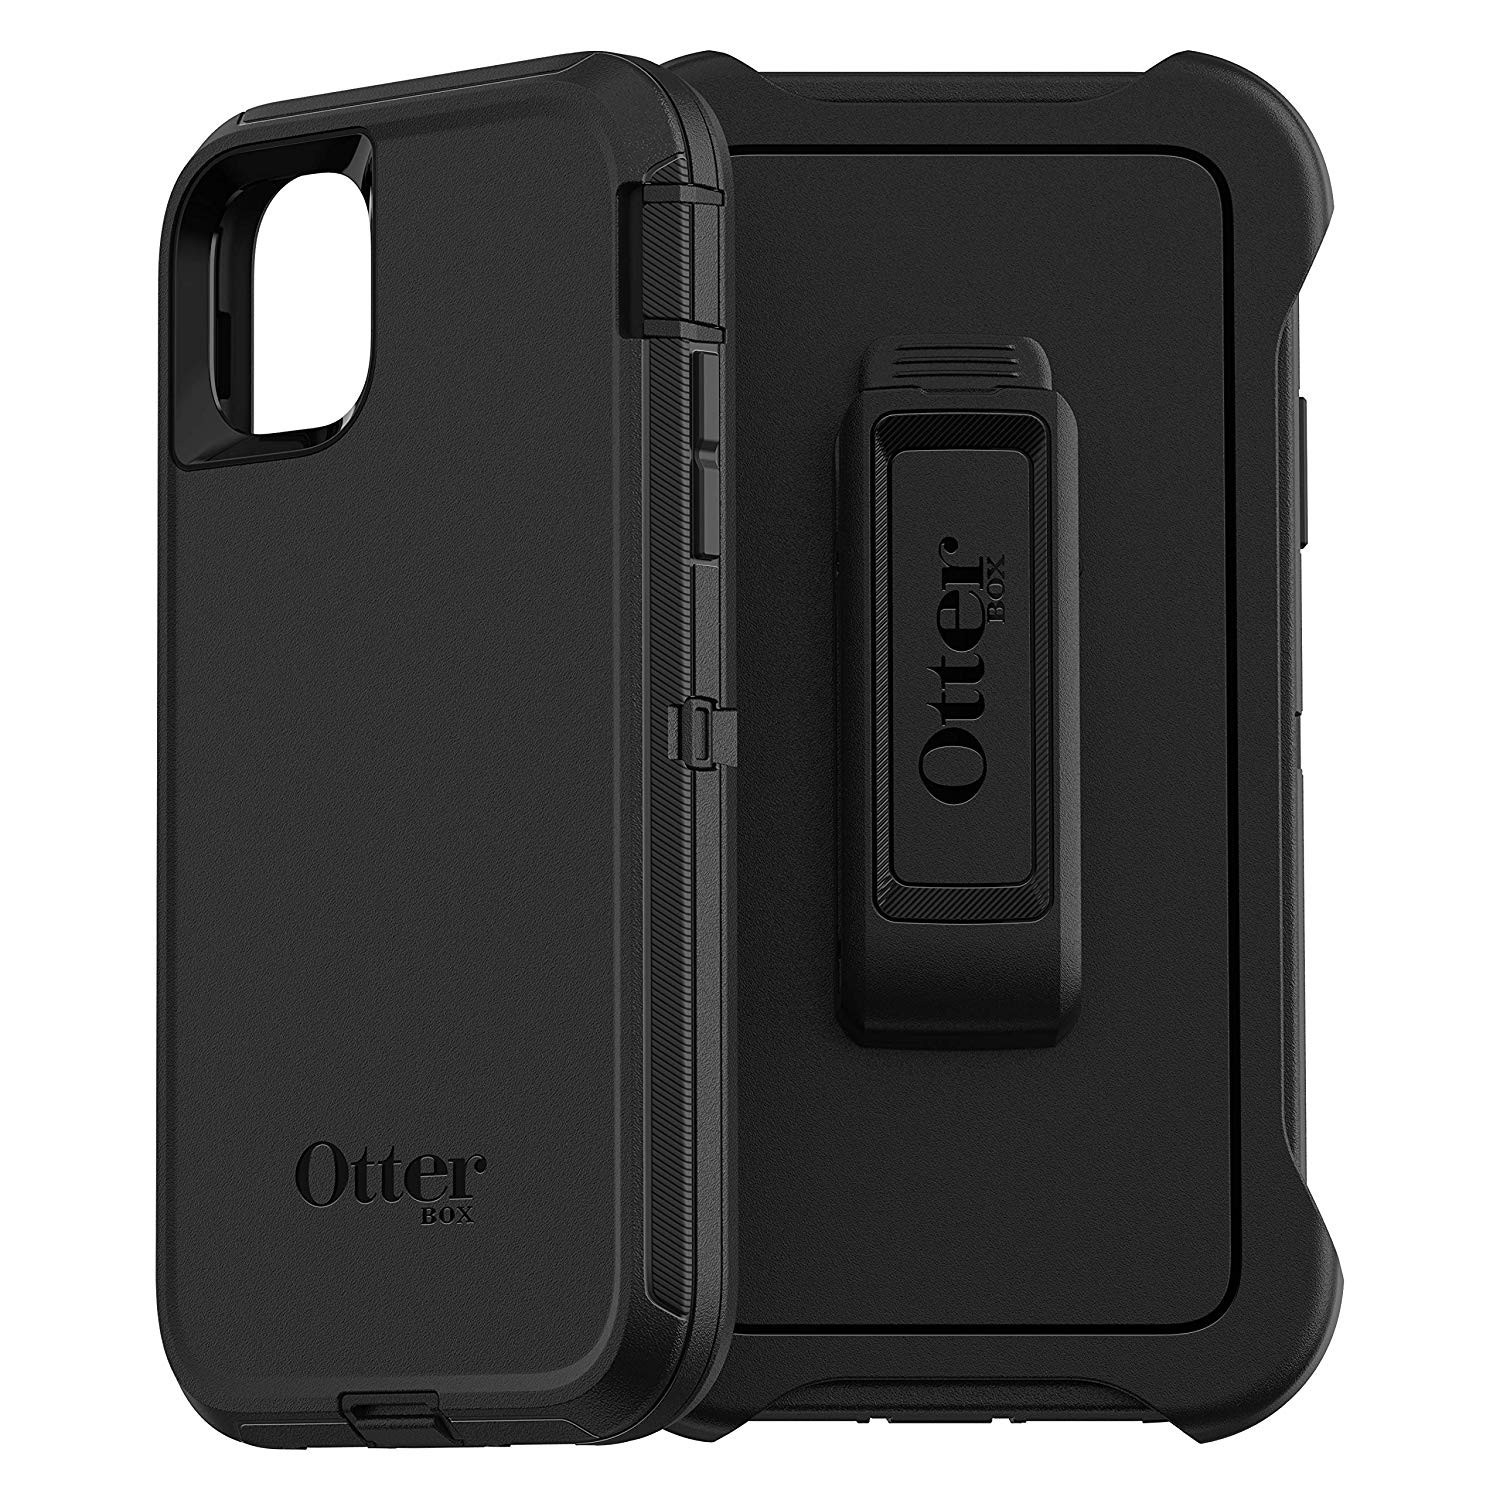 Case - OTTERBOX Defender for iPhone 11 PRO - Black